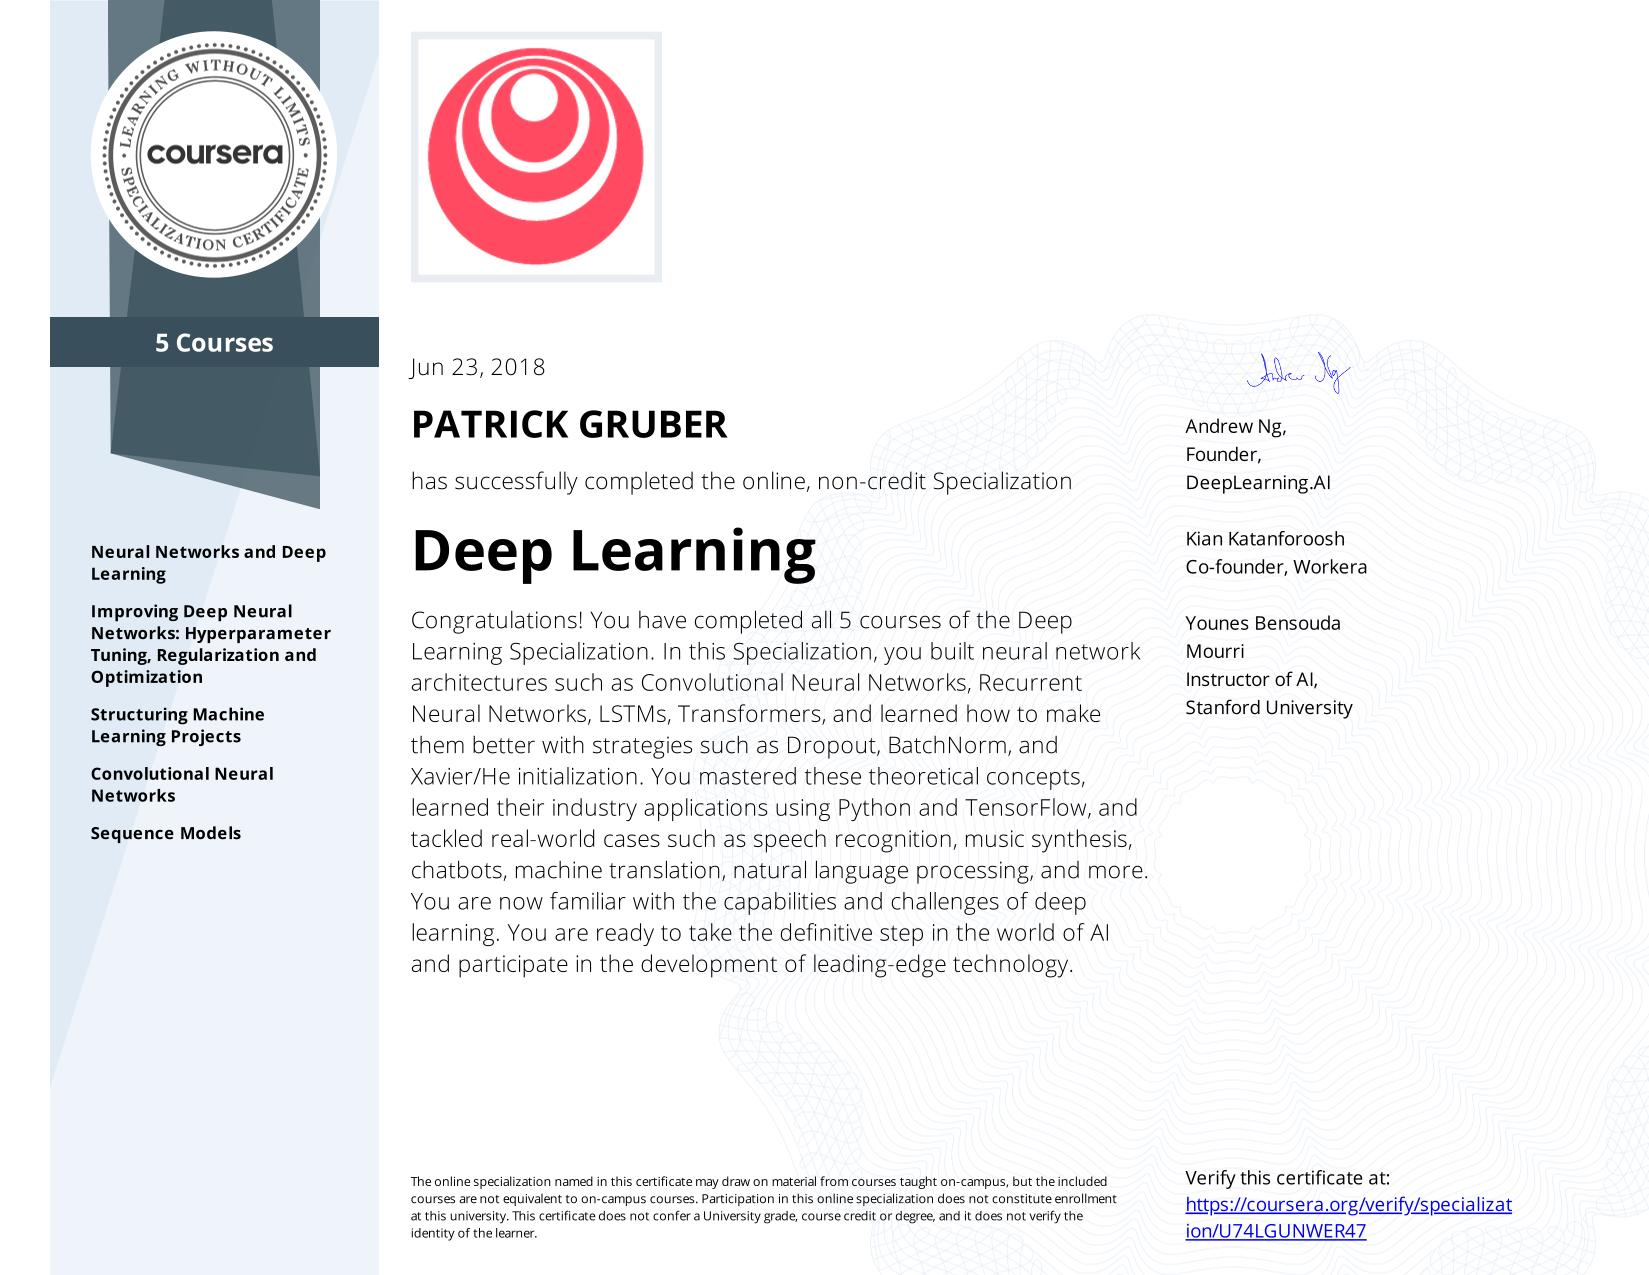 View certificate for PATRICK GRUBER, Deep Learning, offered through Coursera. The Deep Learning Specialization is designed to prepare learners to participate in the development of cutting-edge AI technology, and to understand the capability, the challenges, and the consequences of the rise of deep learning. Through five interconnected courses, learners develop a profound knowledge of the hottest AI algorithms, mastering deep learning from its foundations (neural networks) to its industry applications (Computer Vision, Natural Language Processing, Speech Recognition, etc.).